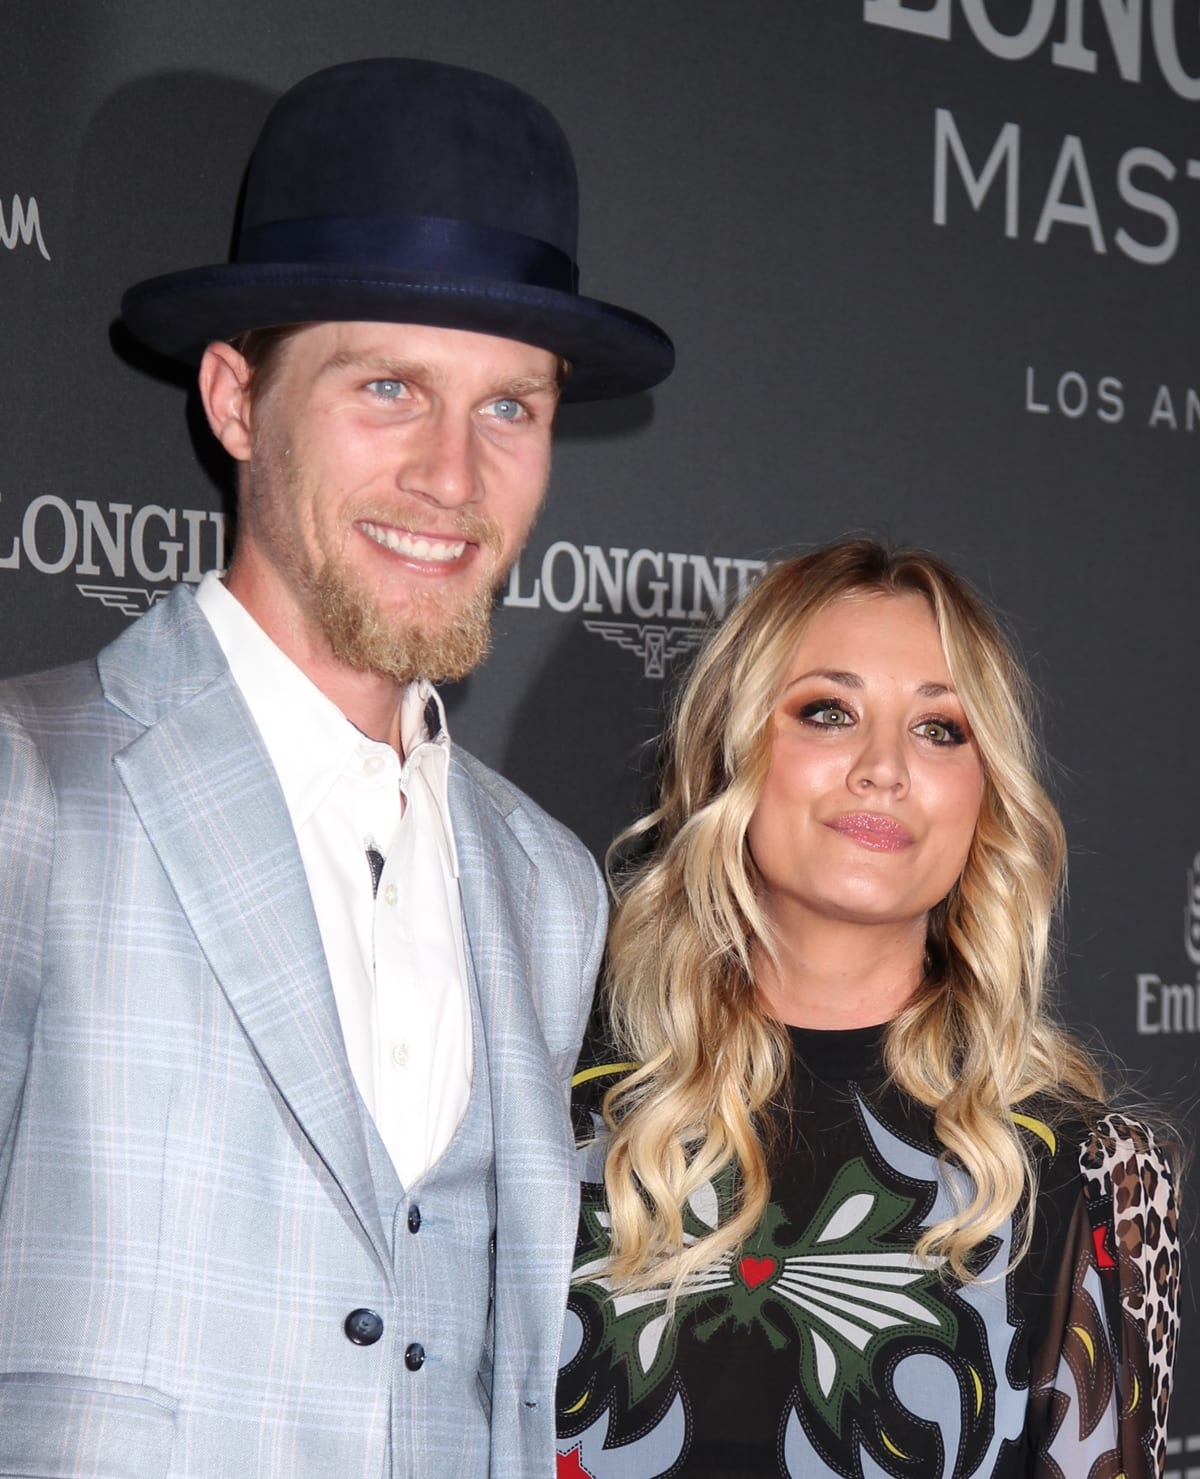 Equestrians Kaley Cuoco and Karl Cook started dating Cook in 2016 and got engaged on her birthday in November 2017